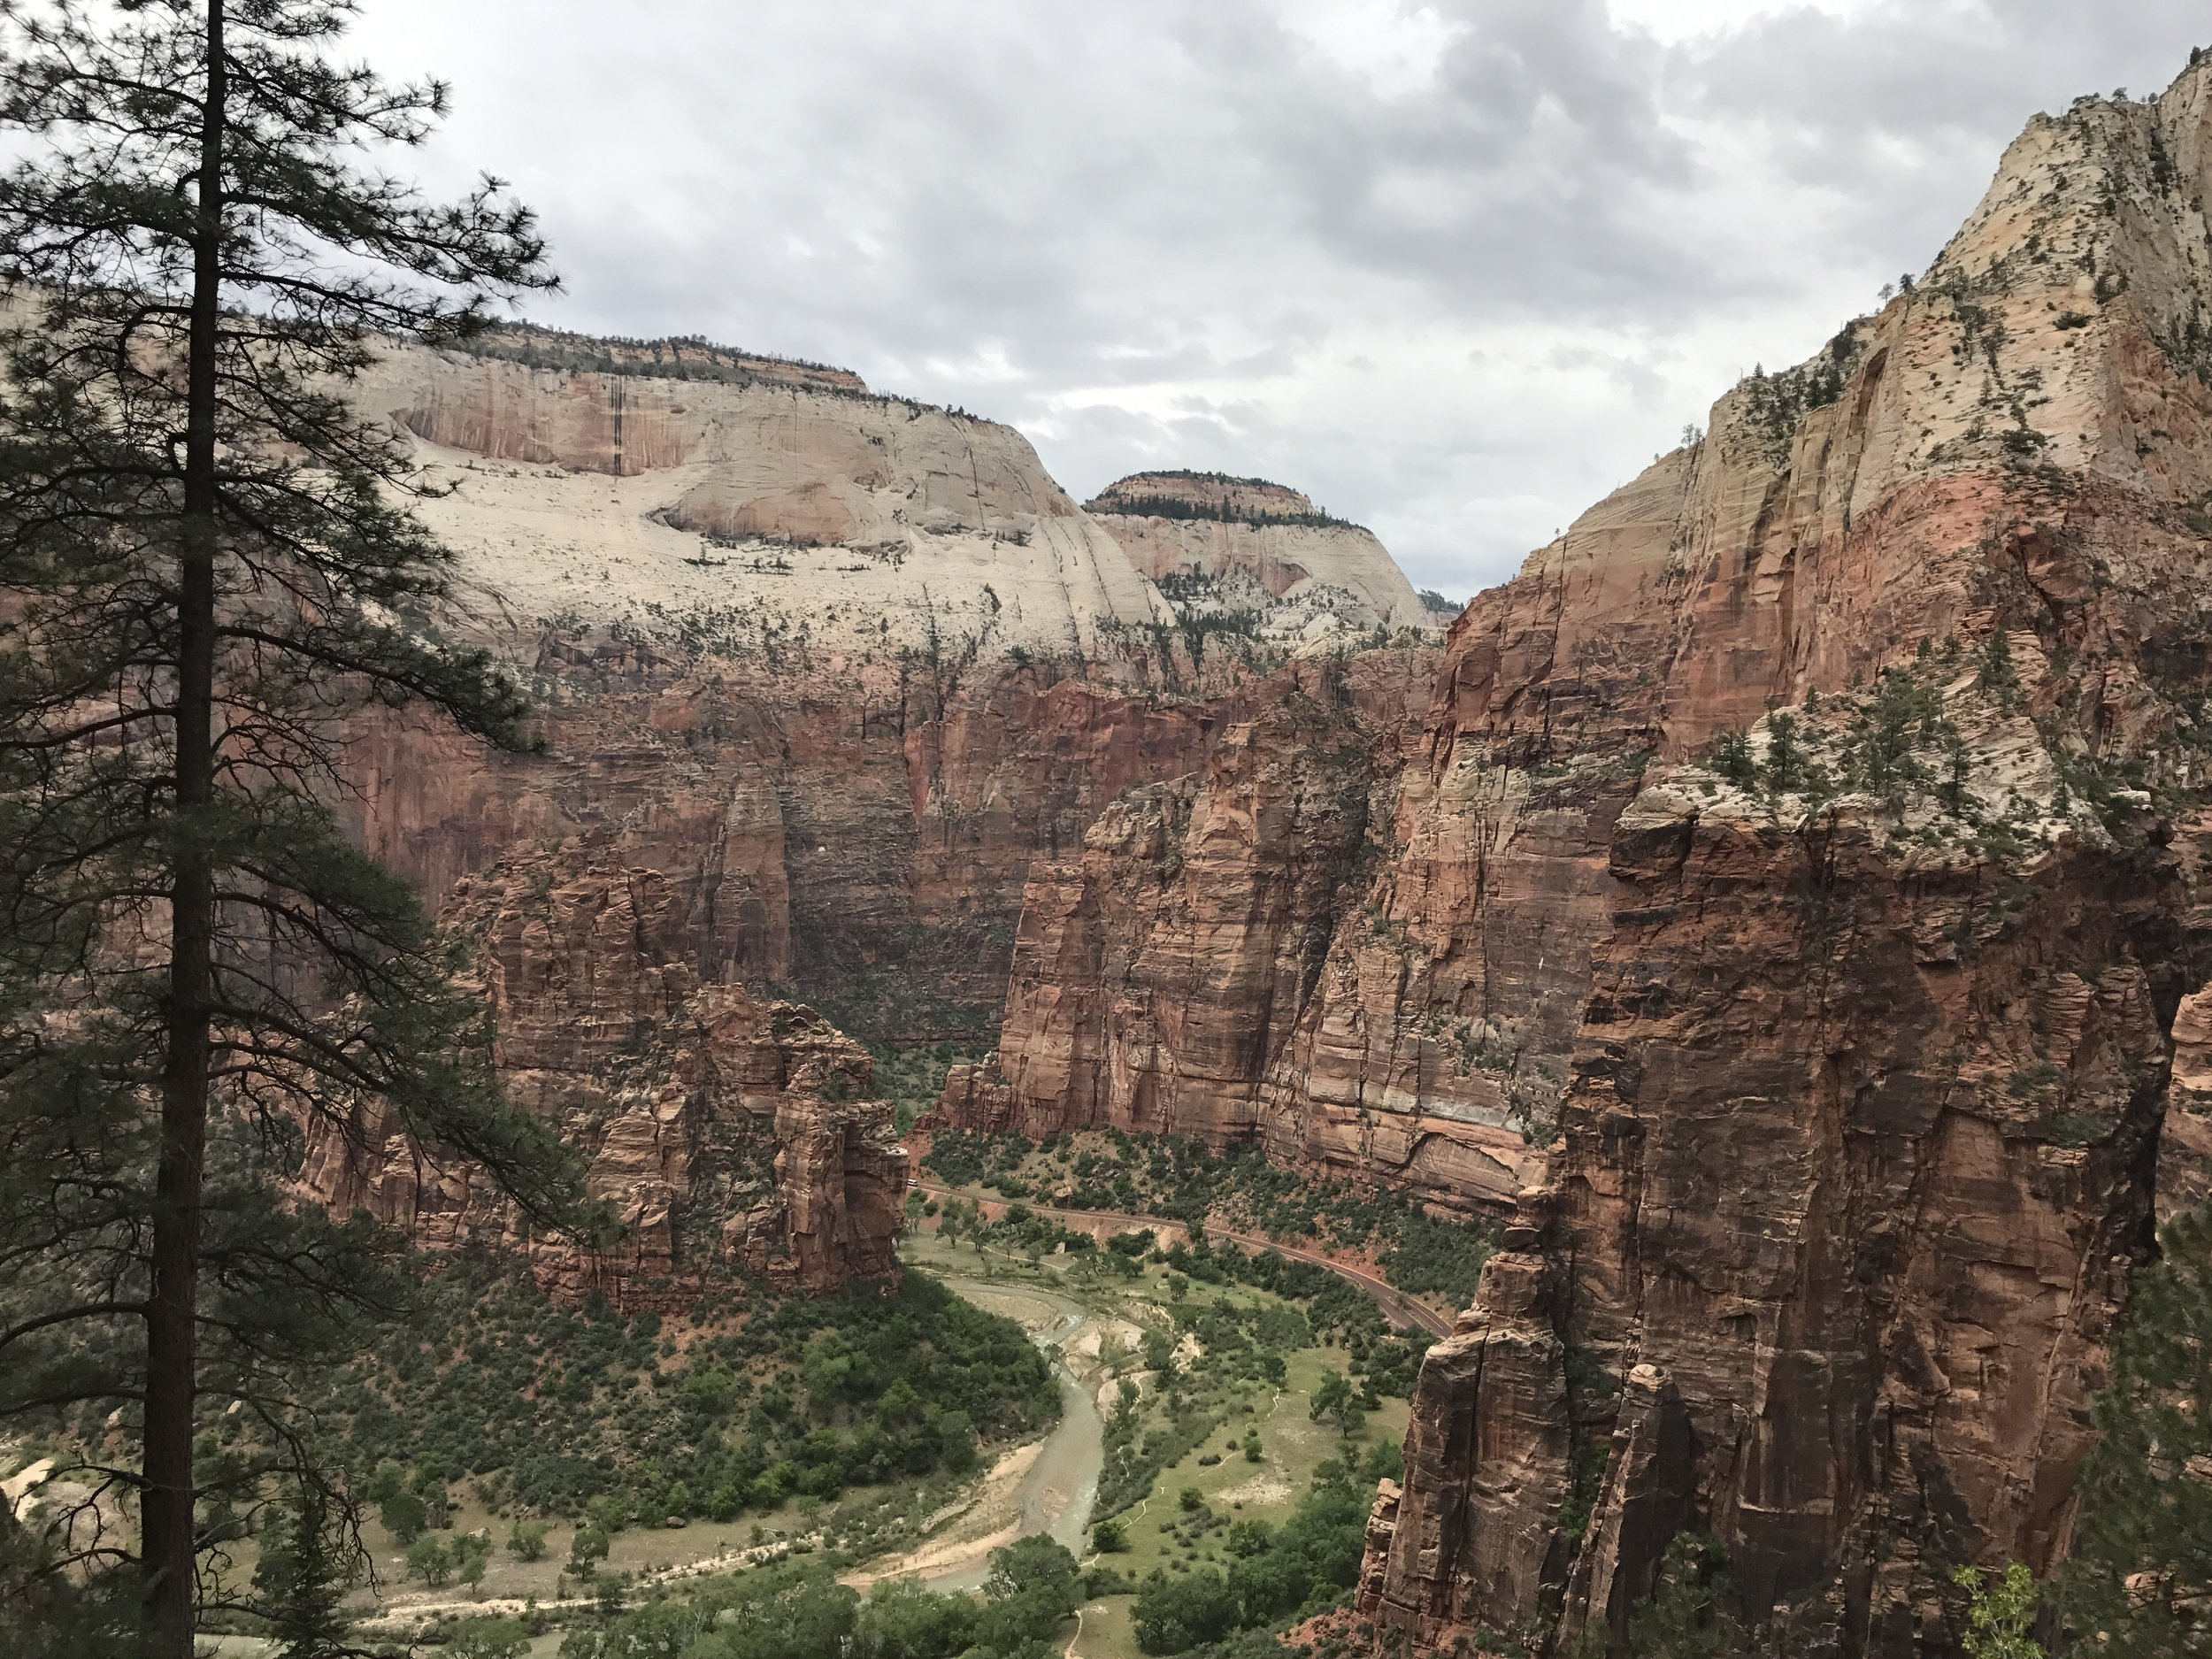 The first part of this hike leads up a steep but well paved trail and within 20 minutes of starting you'll feel like the Zion shuttle is miles below!